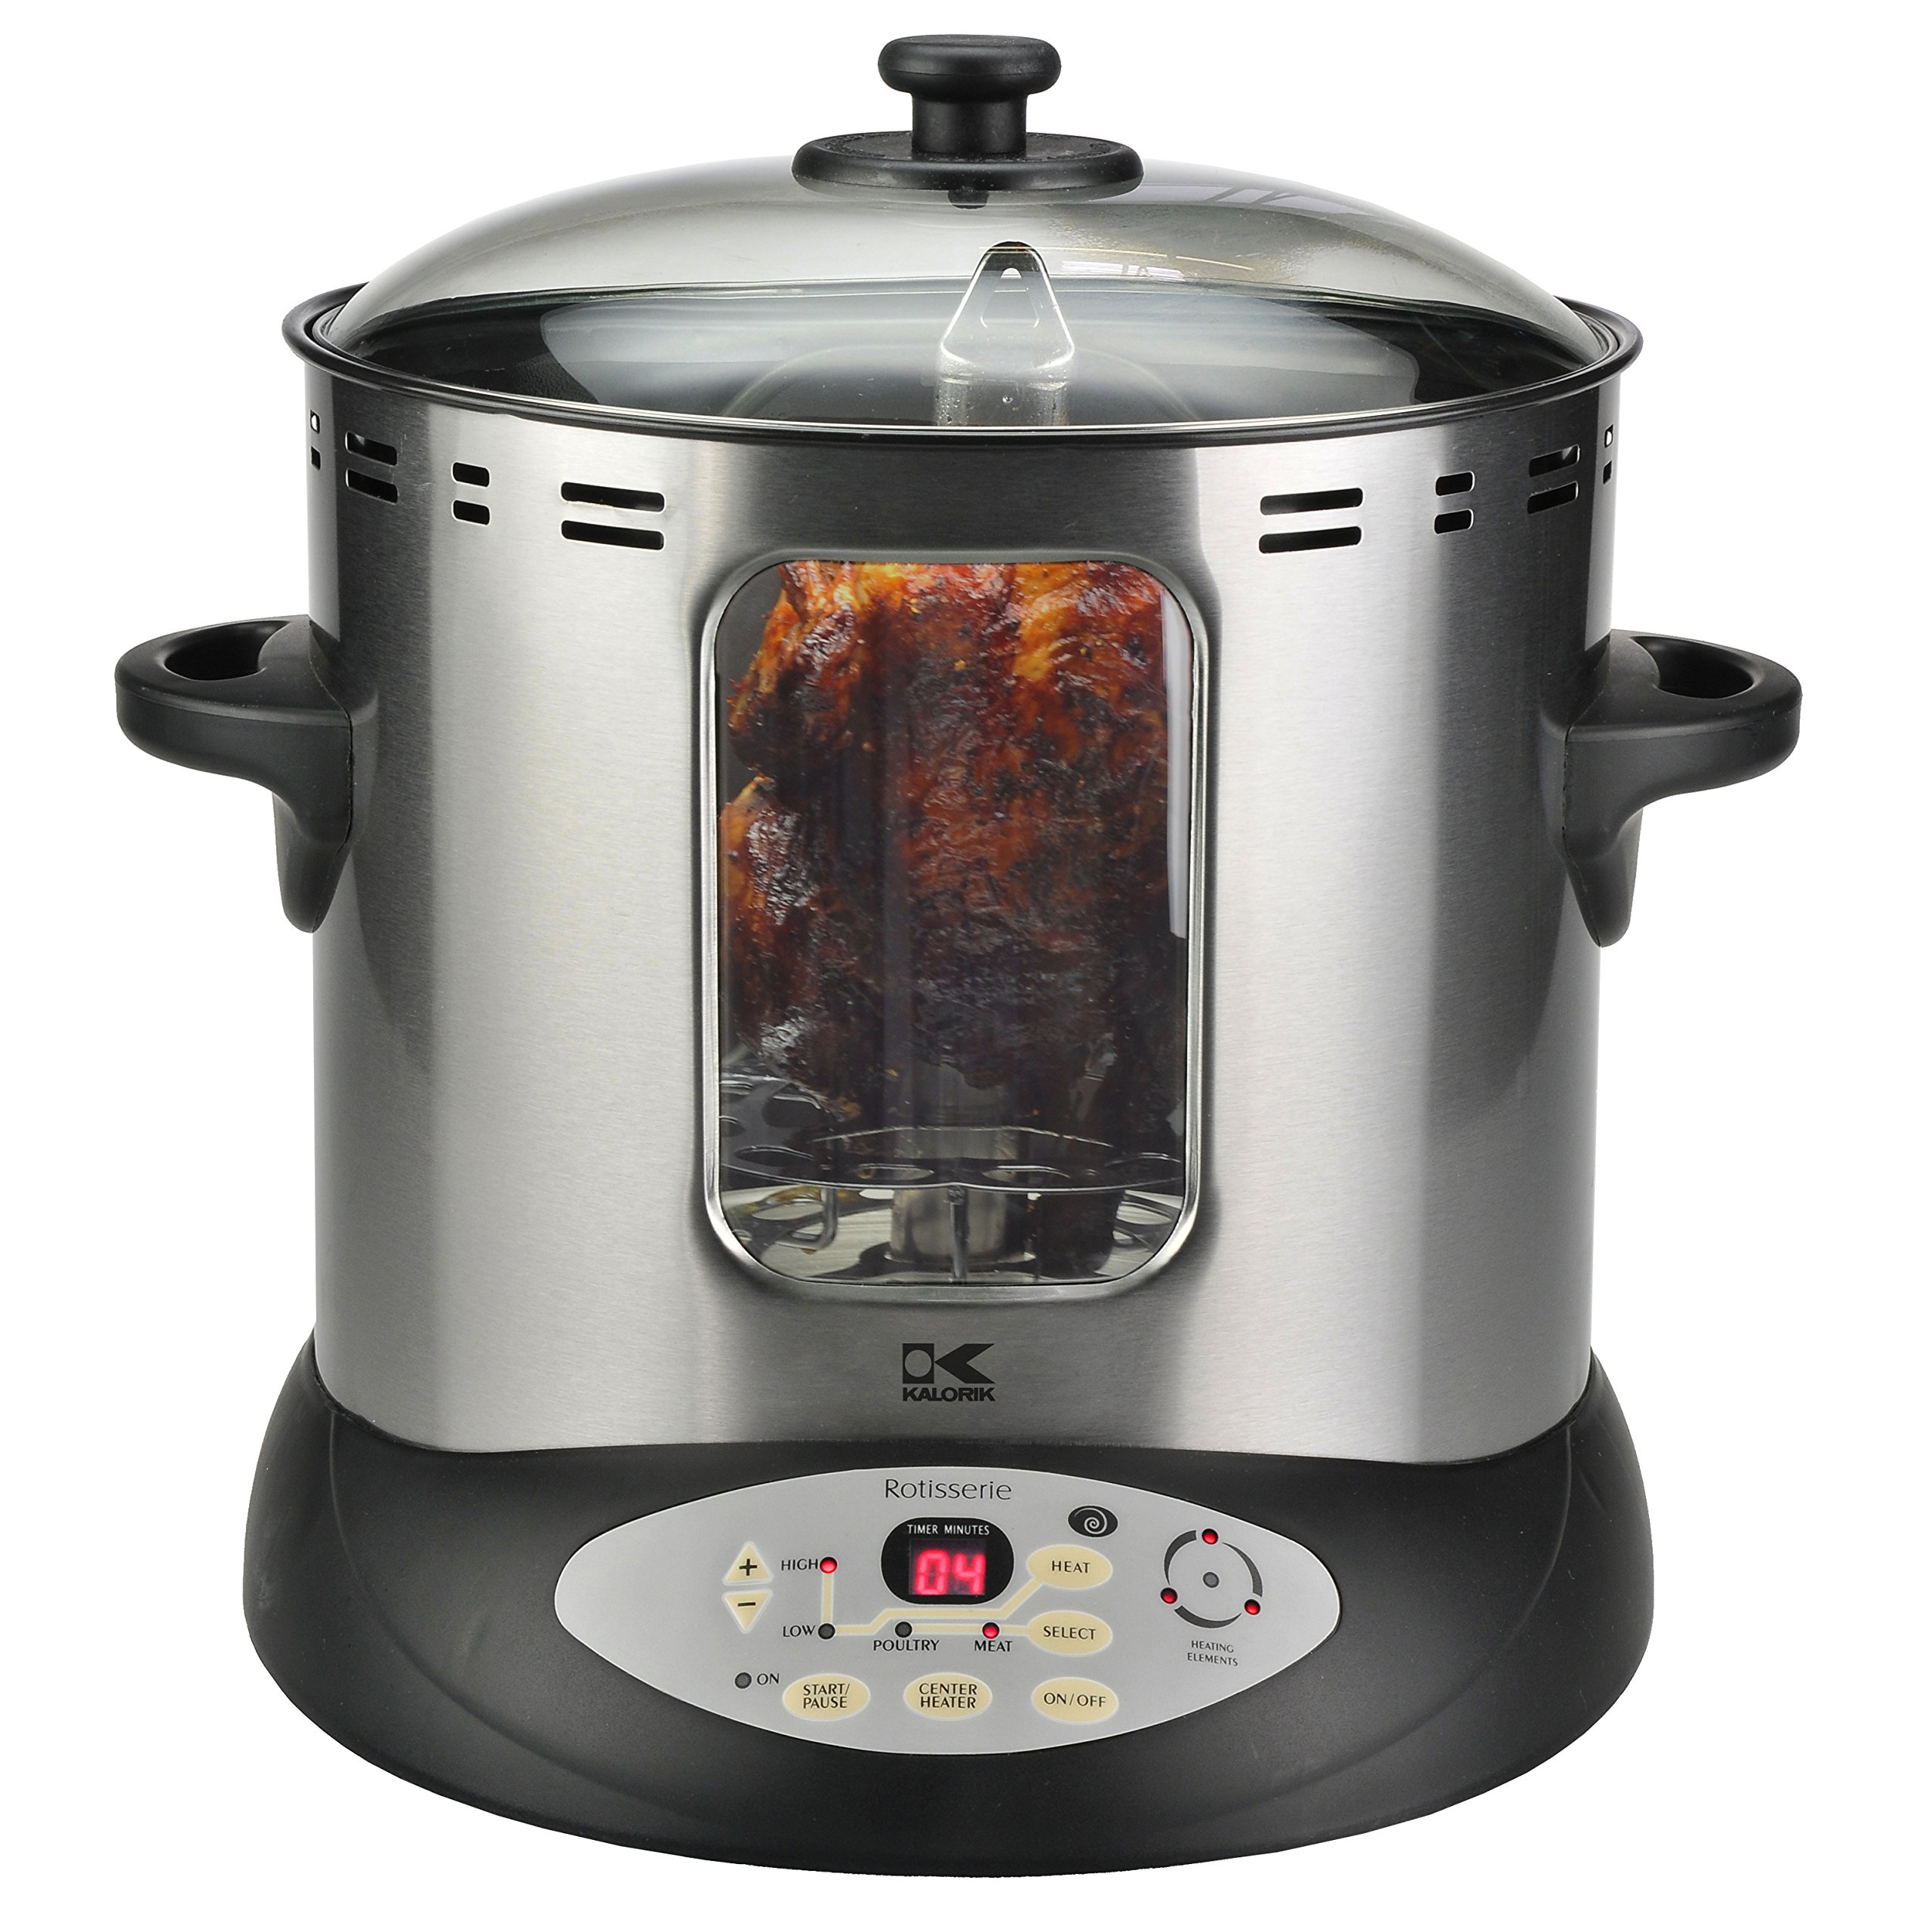 Vertical Digital Rotisserie Oven w/ Non-Stick Interior,Cool Touch Exterior and LED Display Screen